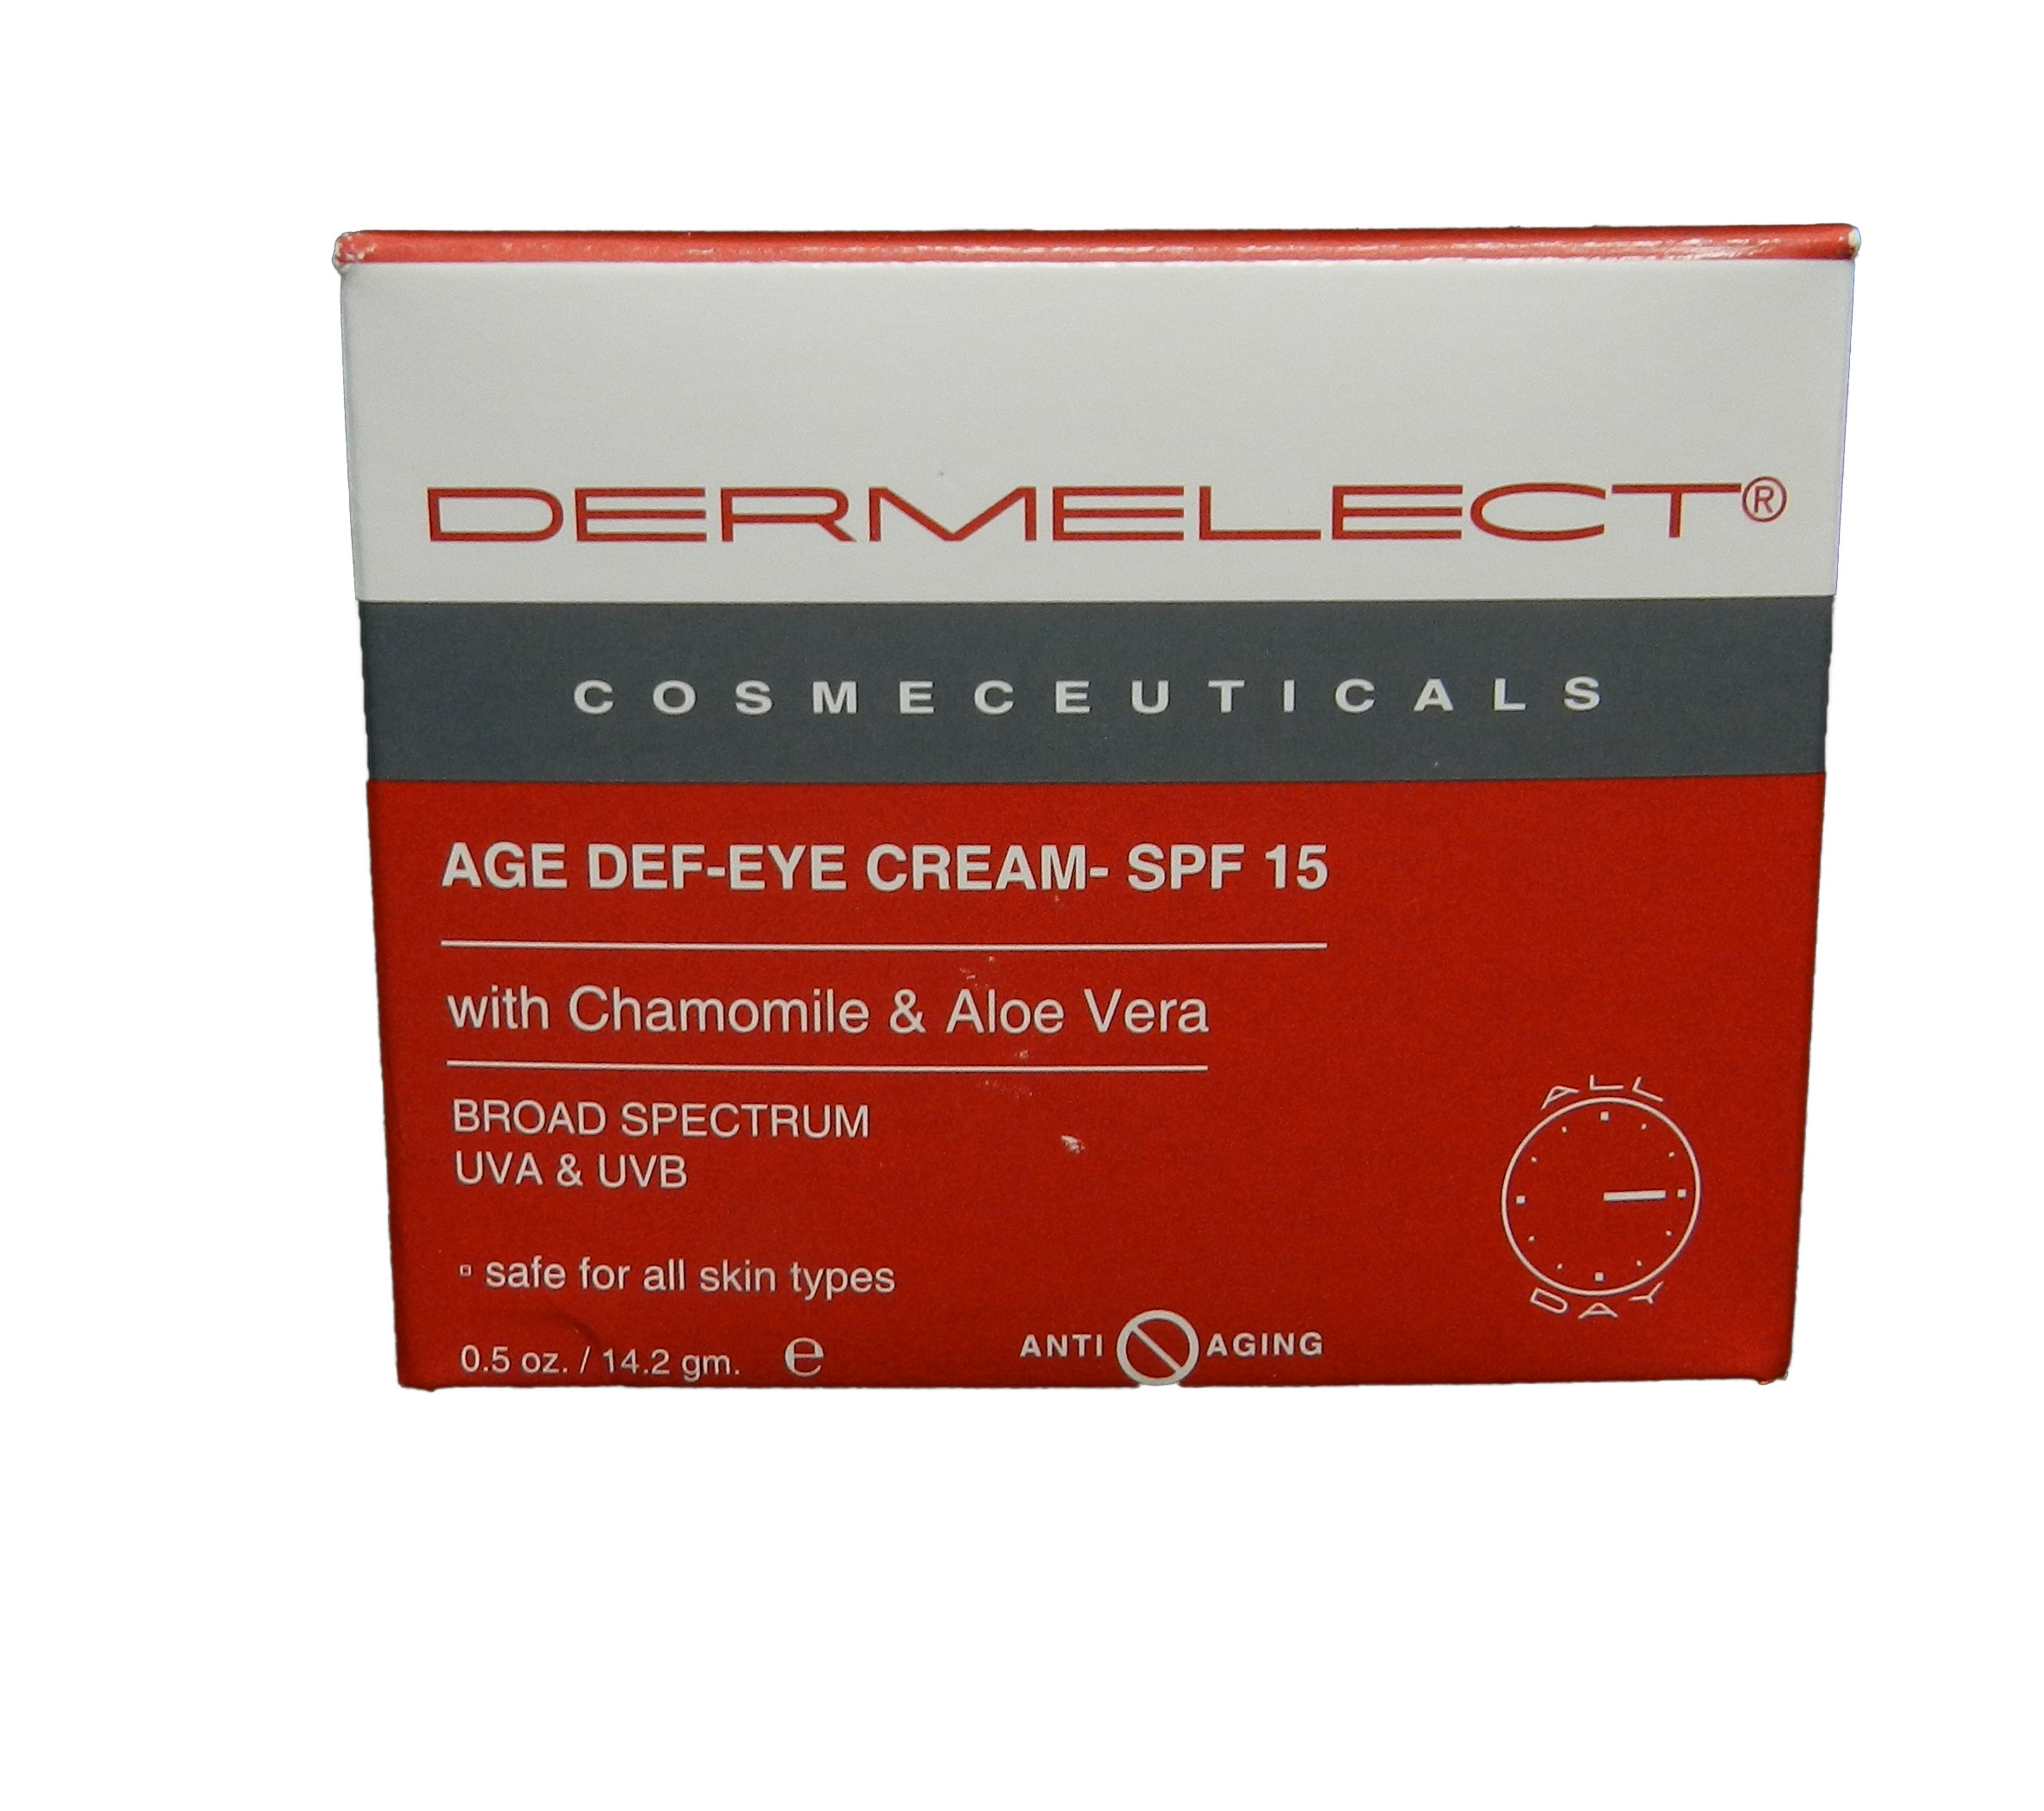 Dermelect - Age Def-Eye Cream SPF 15 -14.2g/0.5oz 4 Pack - Dermaluxe Advanced Cleansing System, White 1 ea